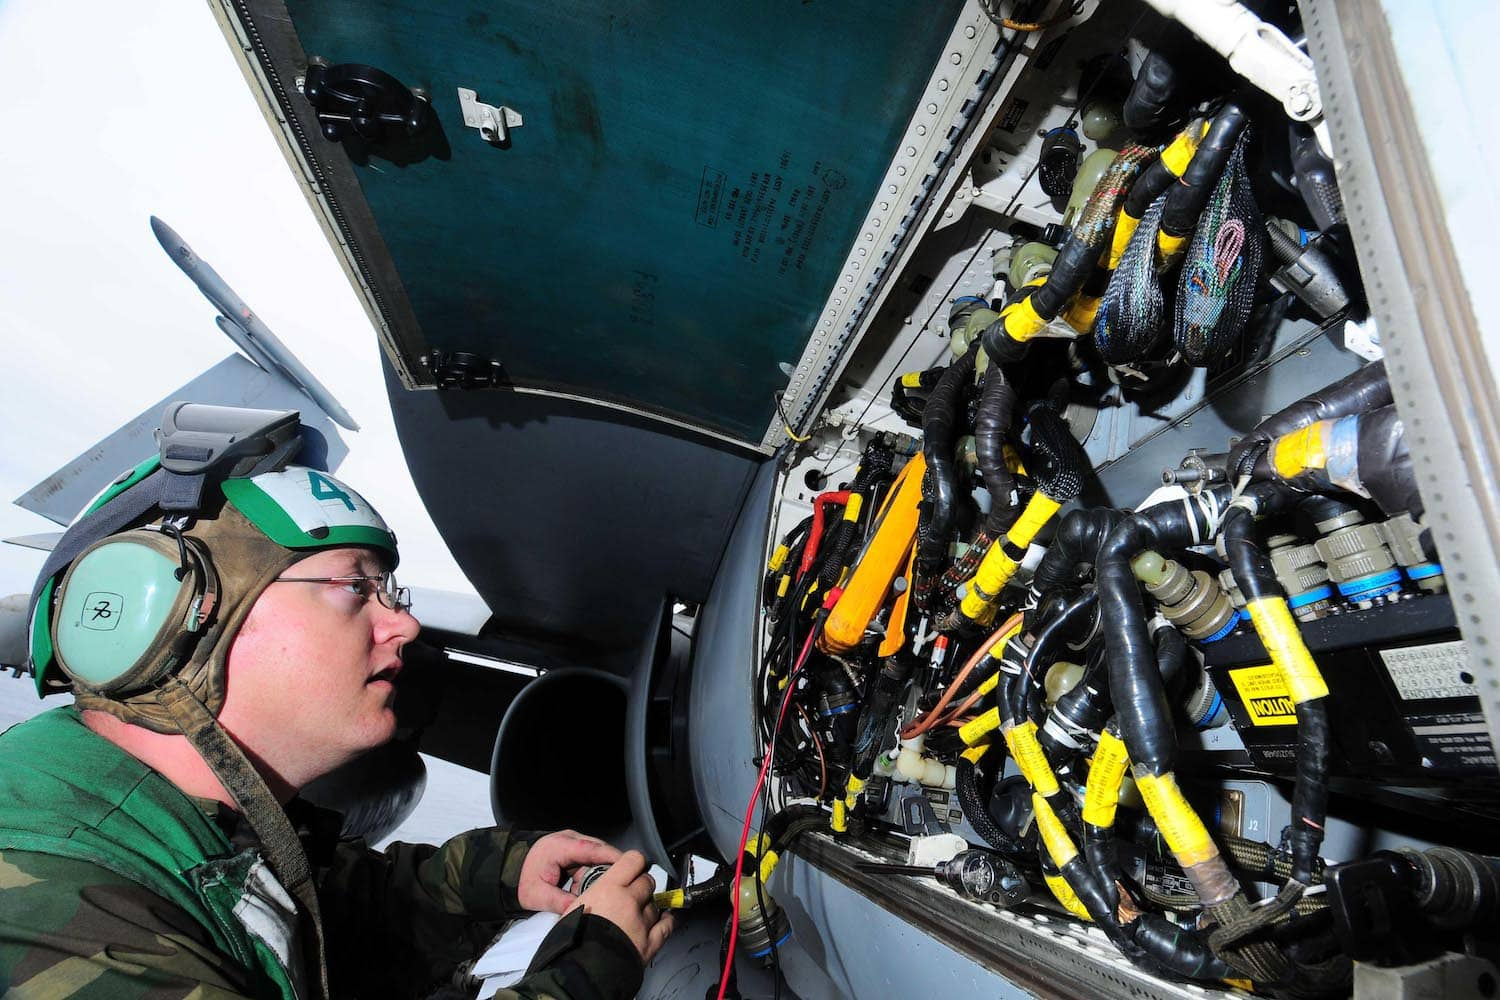 U.S. Navy Aviation Electronics Technician Inspecting the Electrical Wiring of an Aircraft